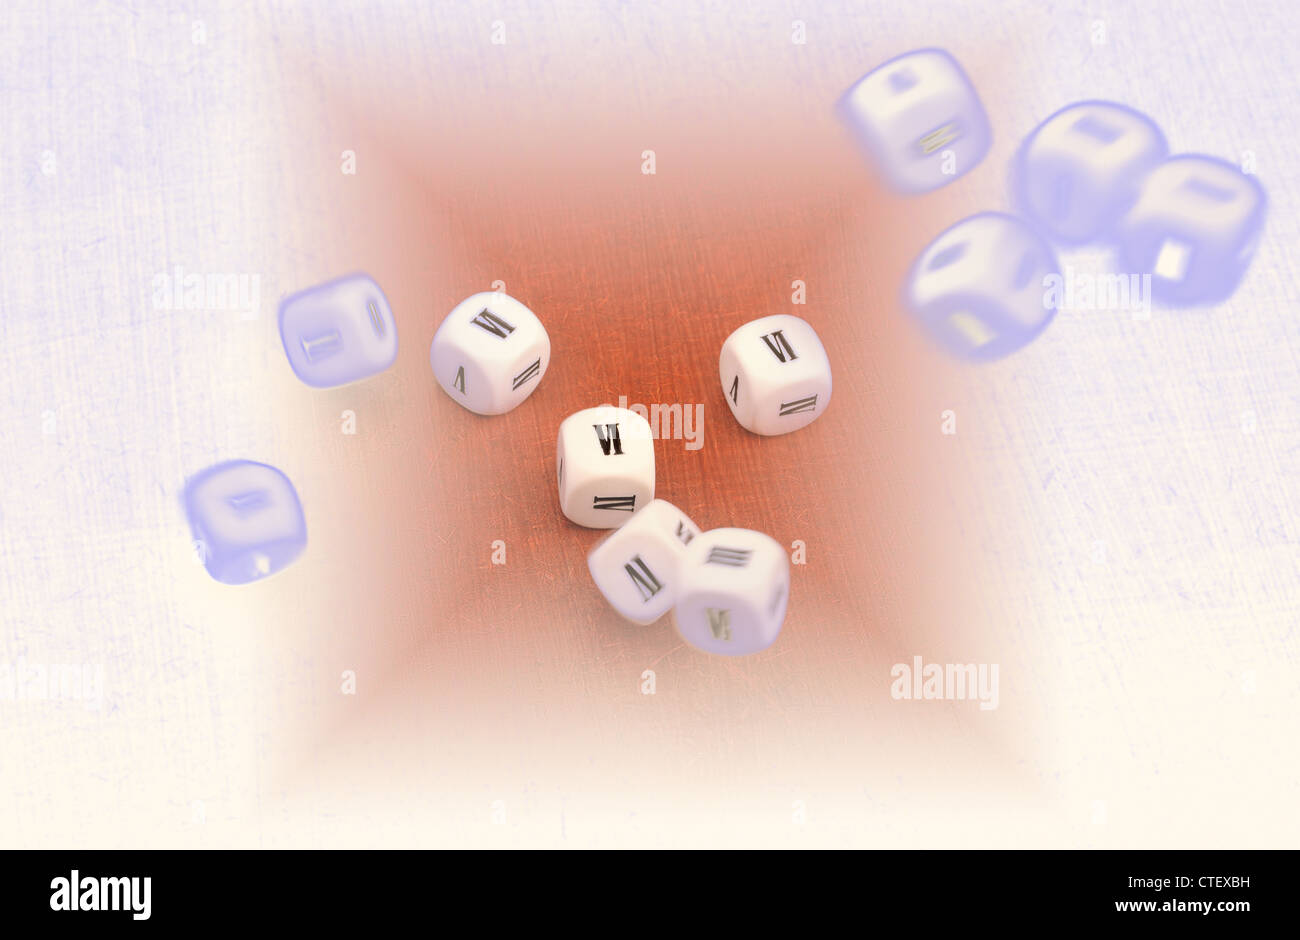 Dice with Roman numerals on all six sides, bouncing around; shown on a graduated background - Stock Image